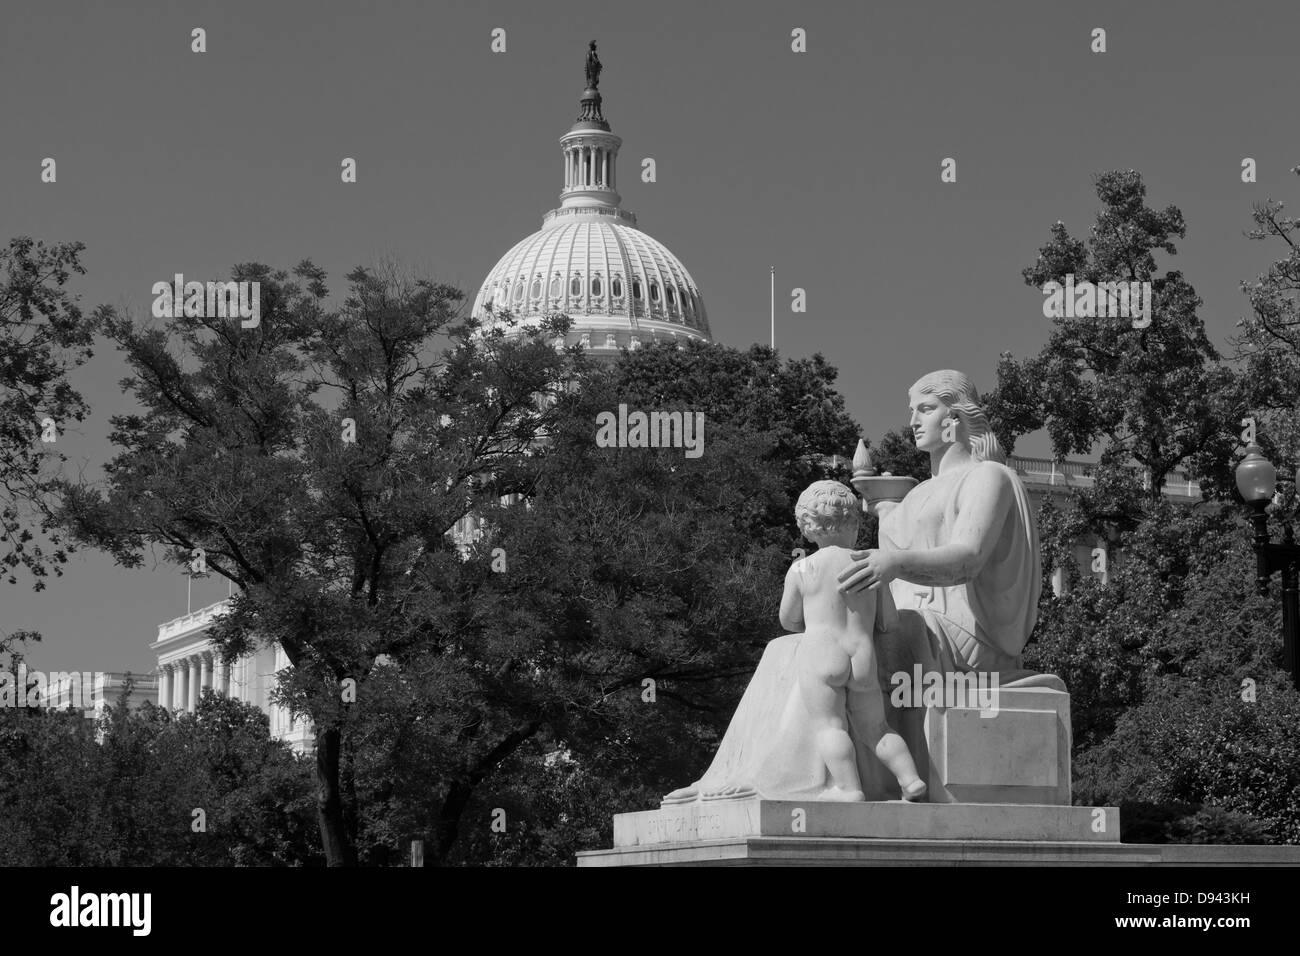 The Spirit of Justice sculpture at the Rayburn House of Representatives building - Washington, DC USA - Stock Image